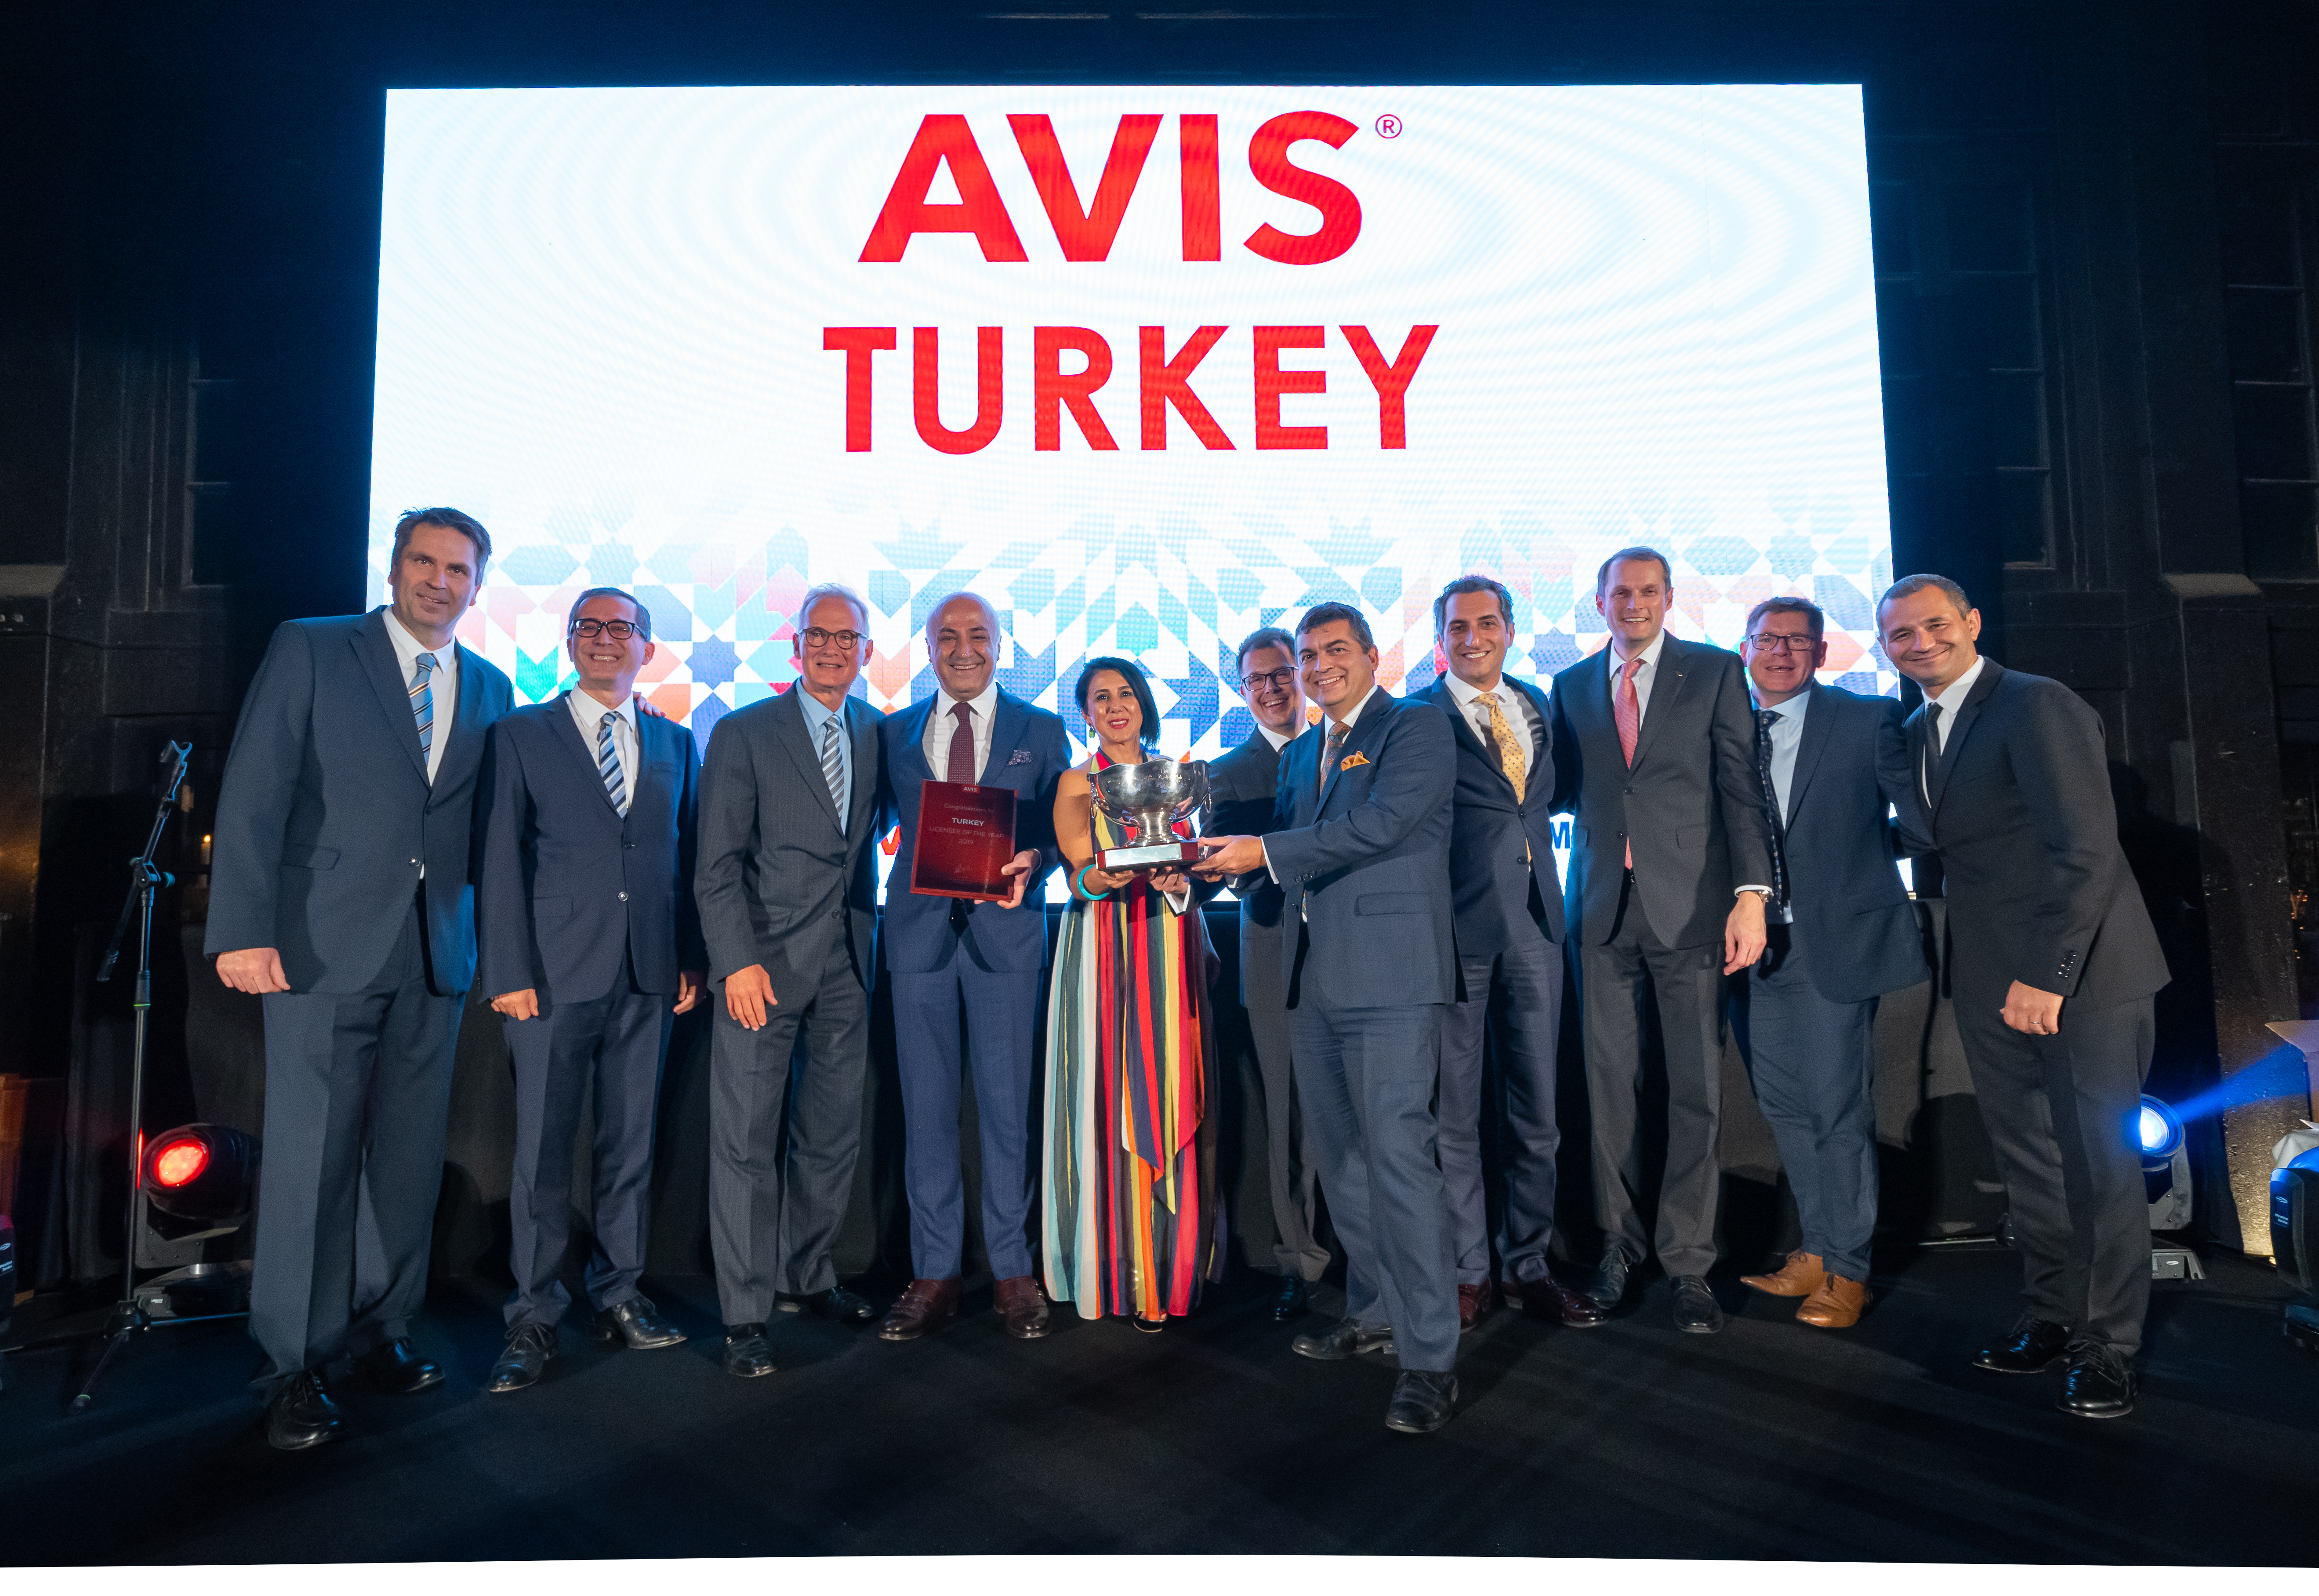 Avis Turkey has not only maintained its number one market share position, but also grown the business by more than 22%, while keeping consistently high customer service scores, showing determination and spirit in the face of adversity. - Photo via Avis.